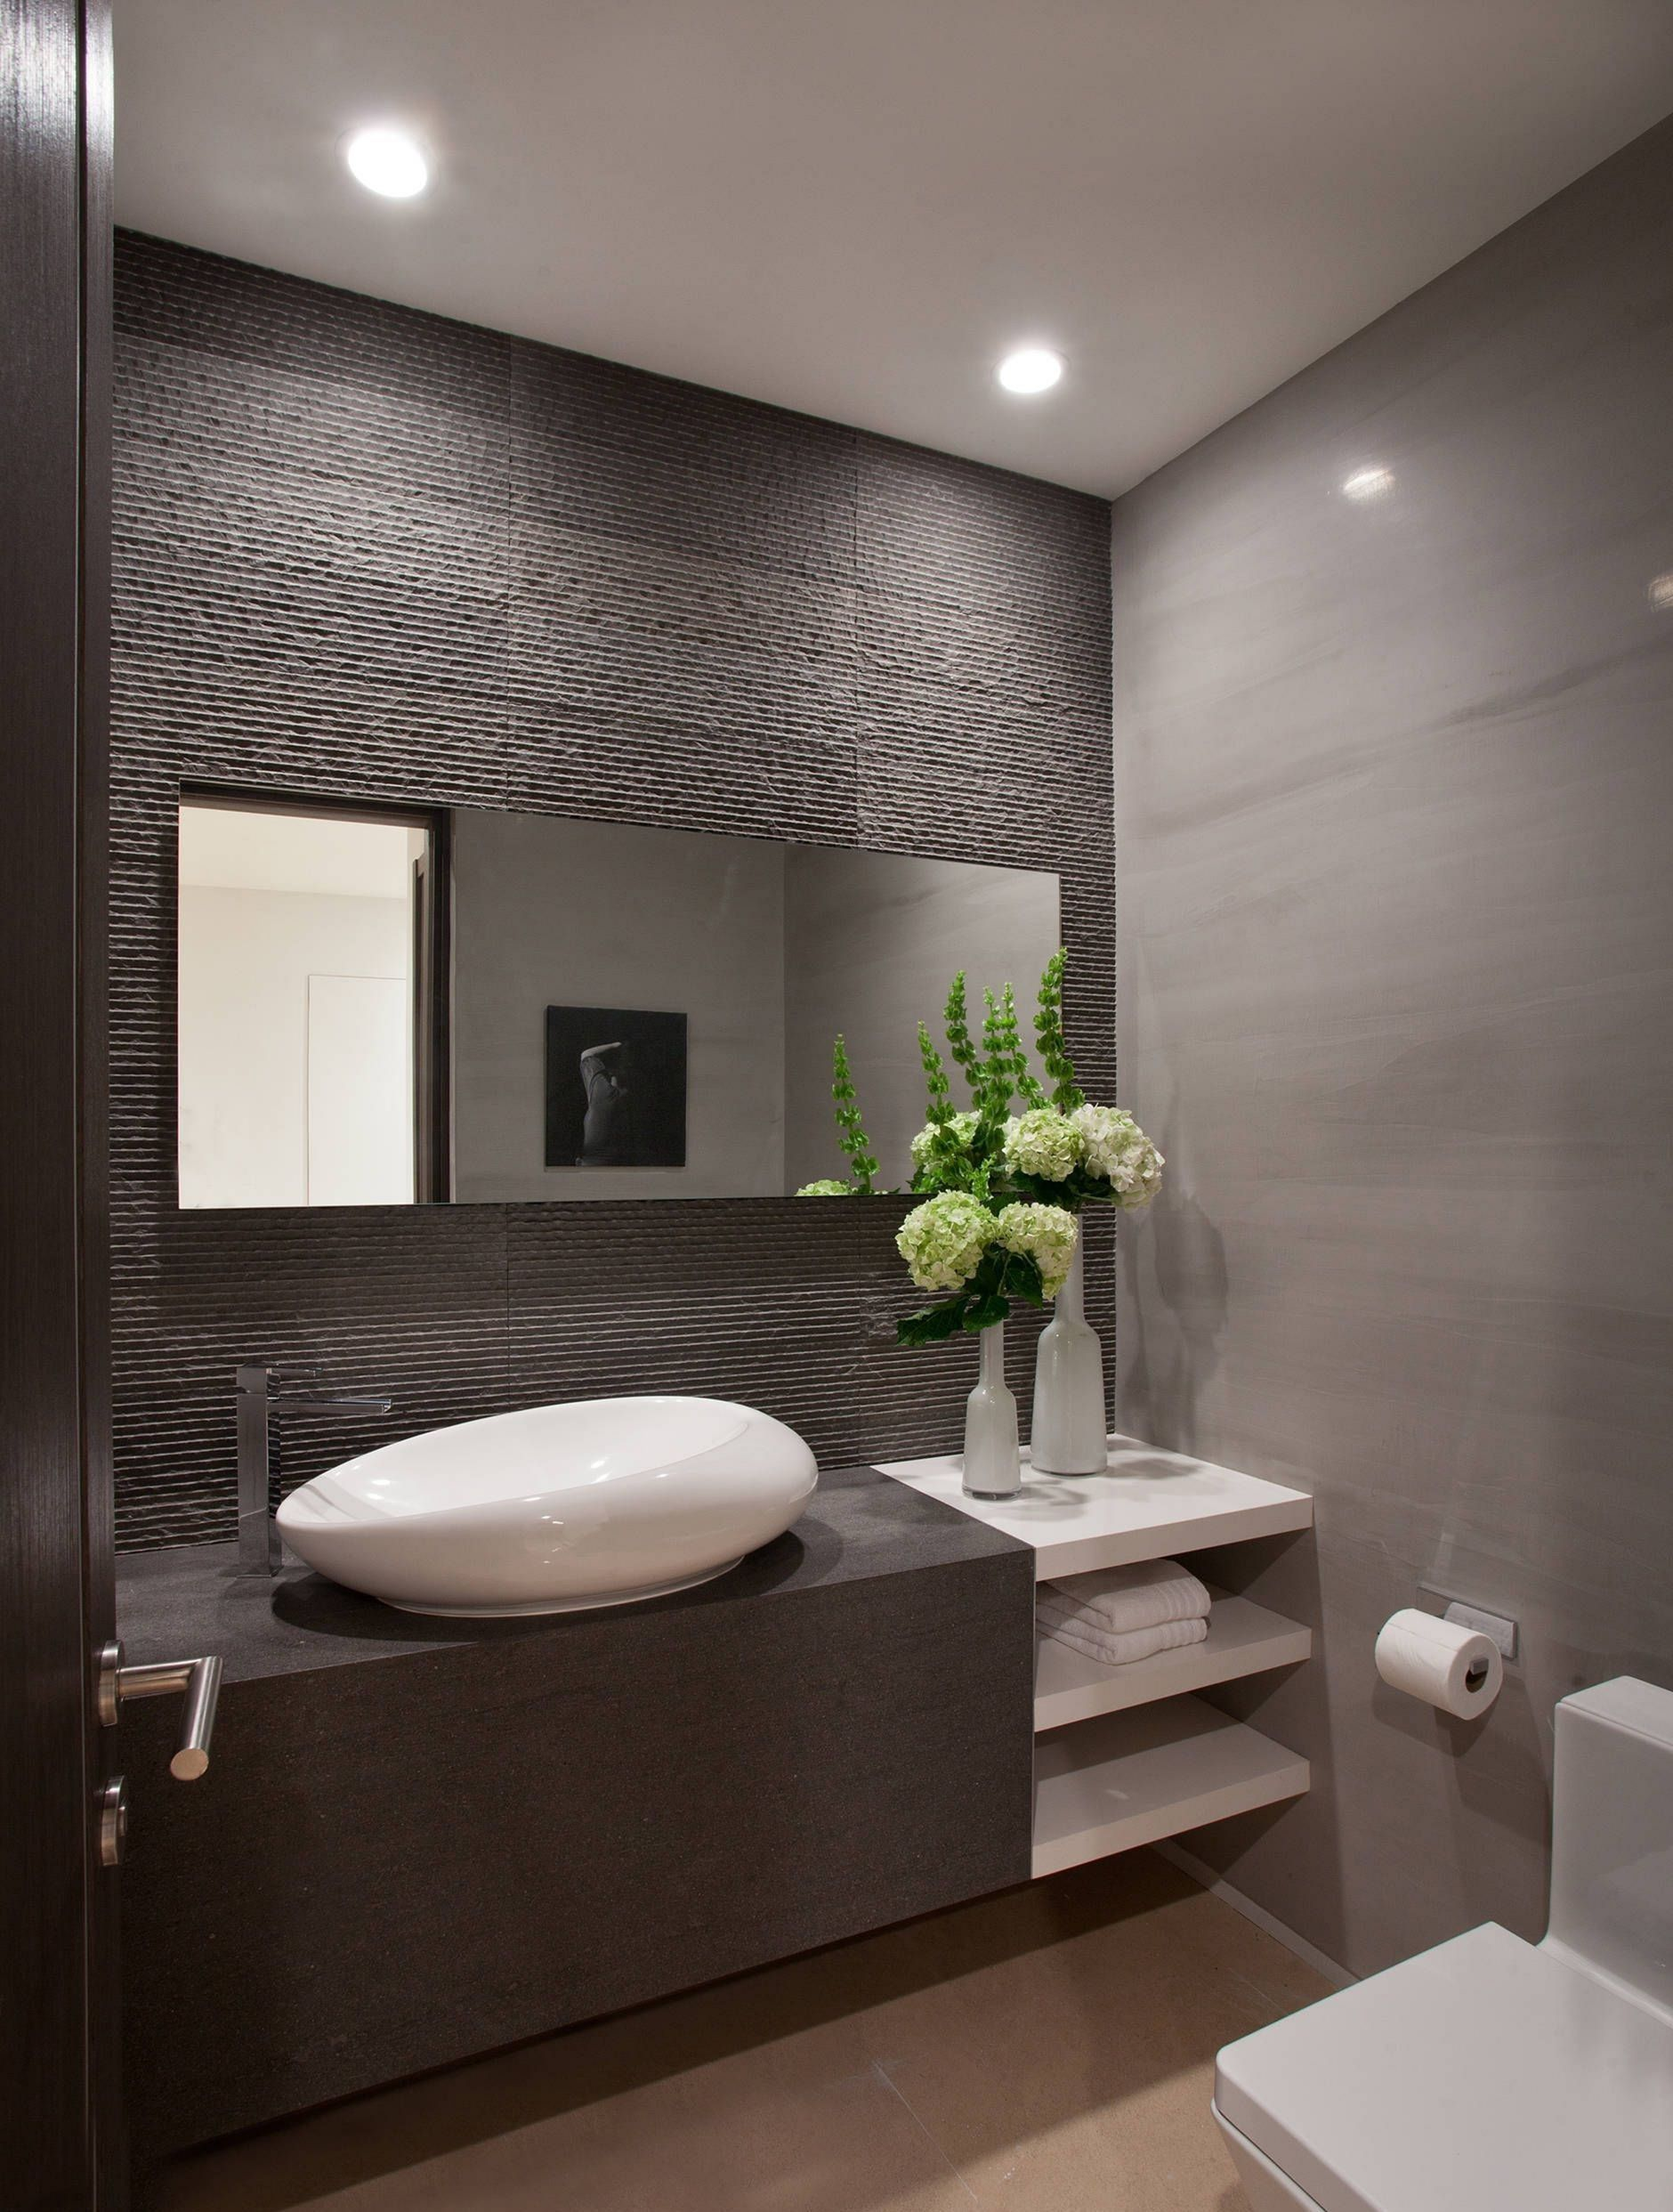 Designerbathroomdesigns Top Bathroom Design Contemporary Bathroom Designs Bathroom Design Small